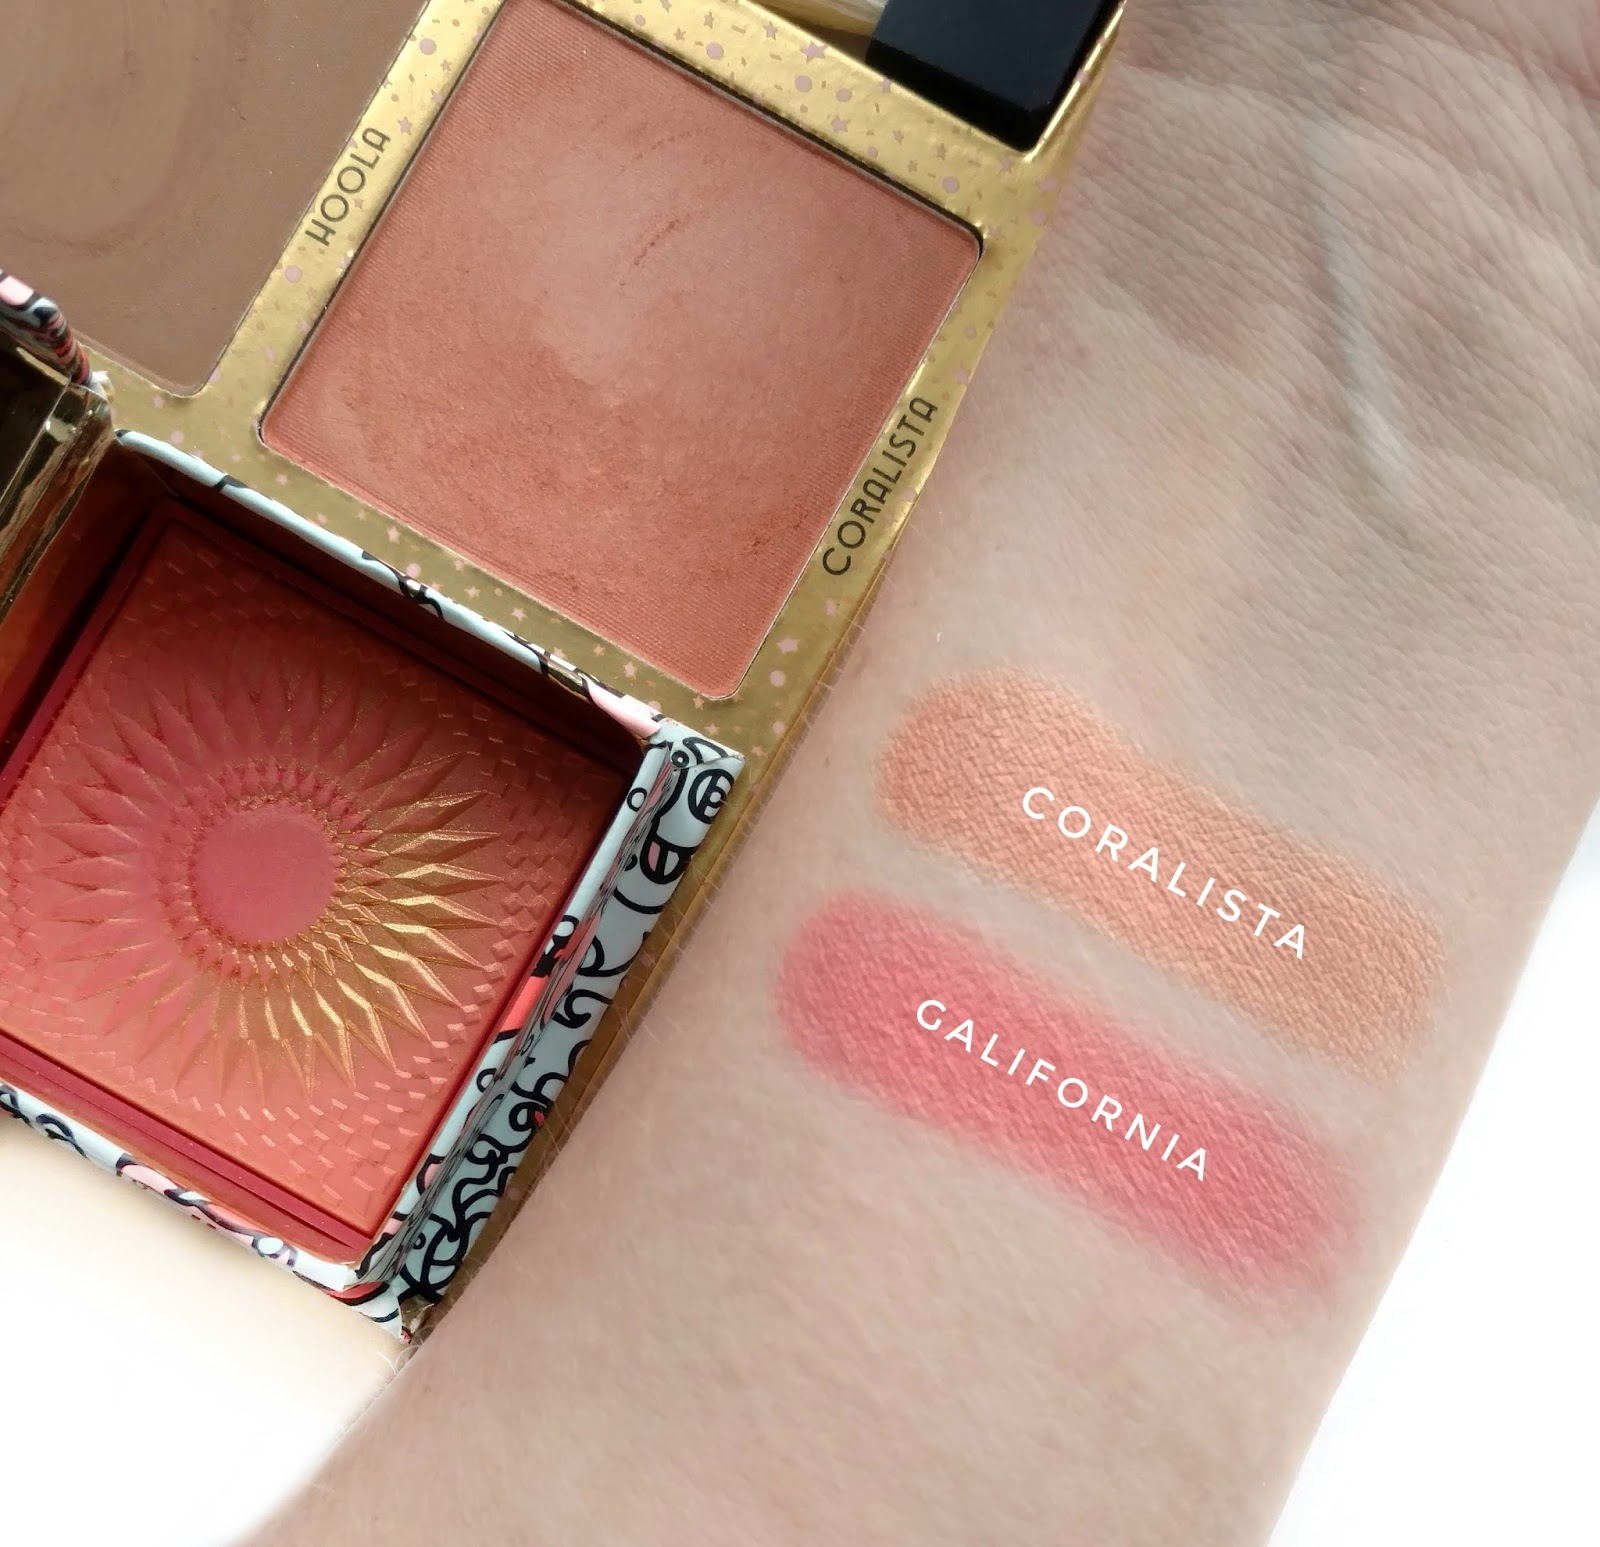 benefit GALifornia coralista comparison swatches